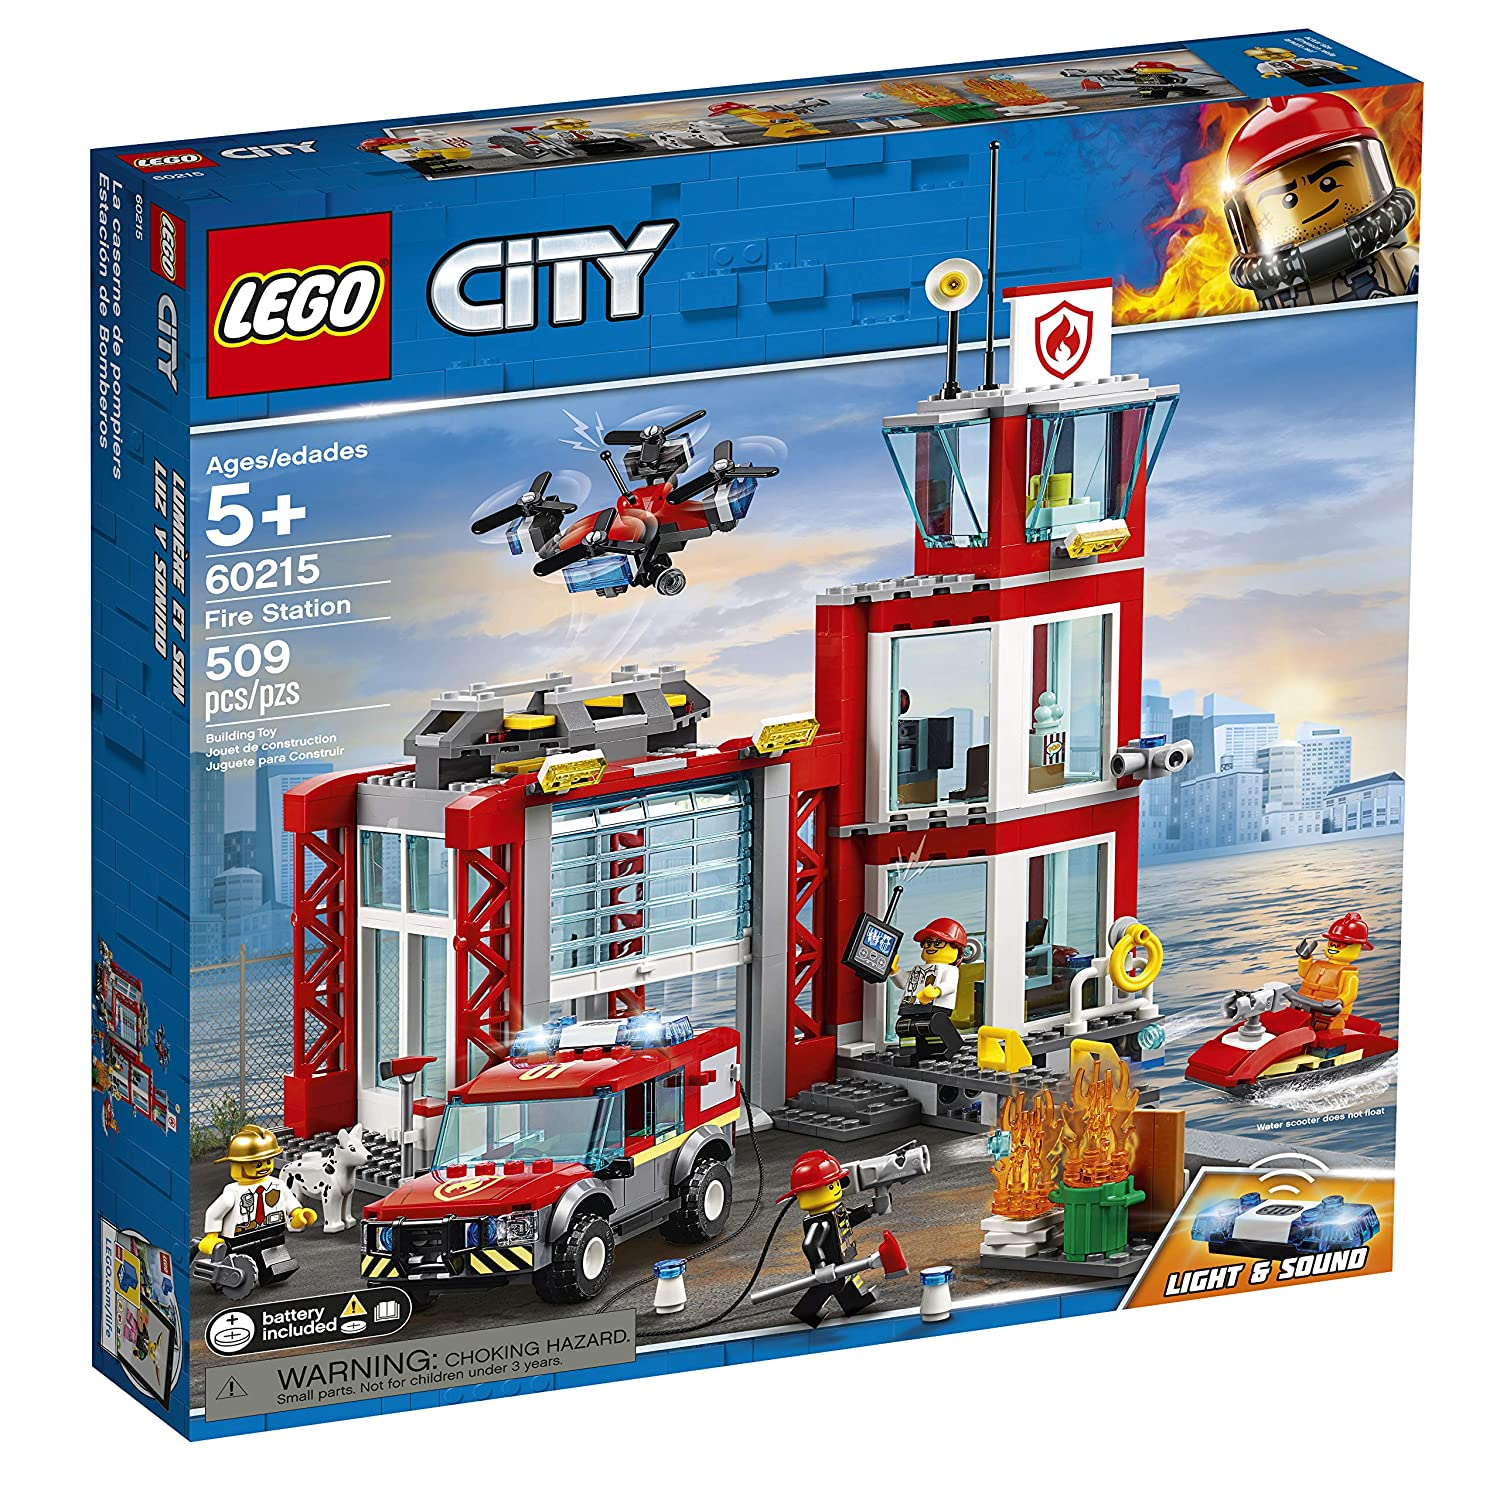 Top 9 Best LEGO Fire Station Sets Reviews in 2020 1